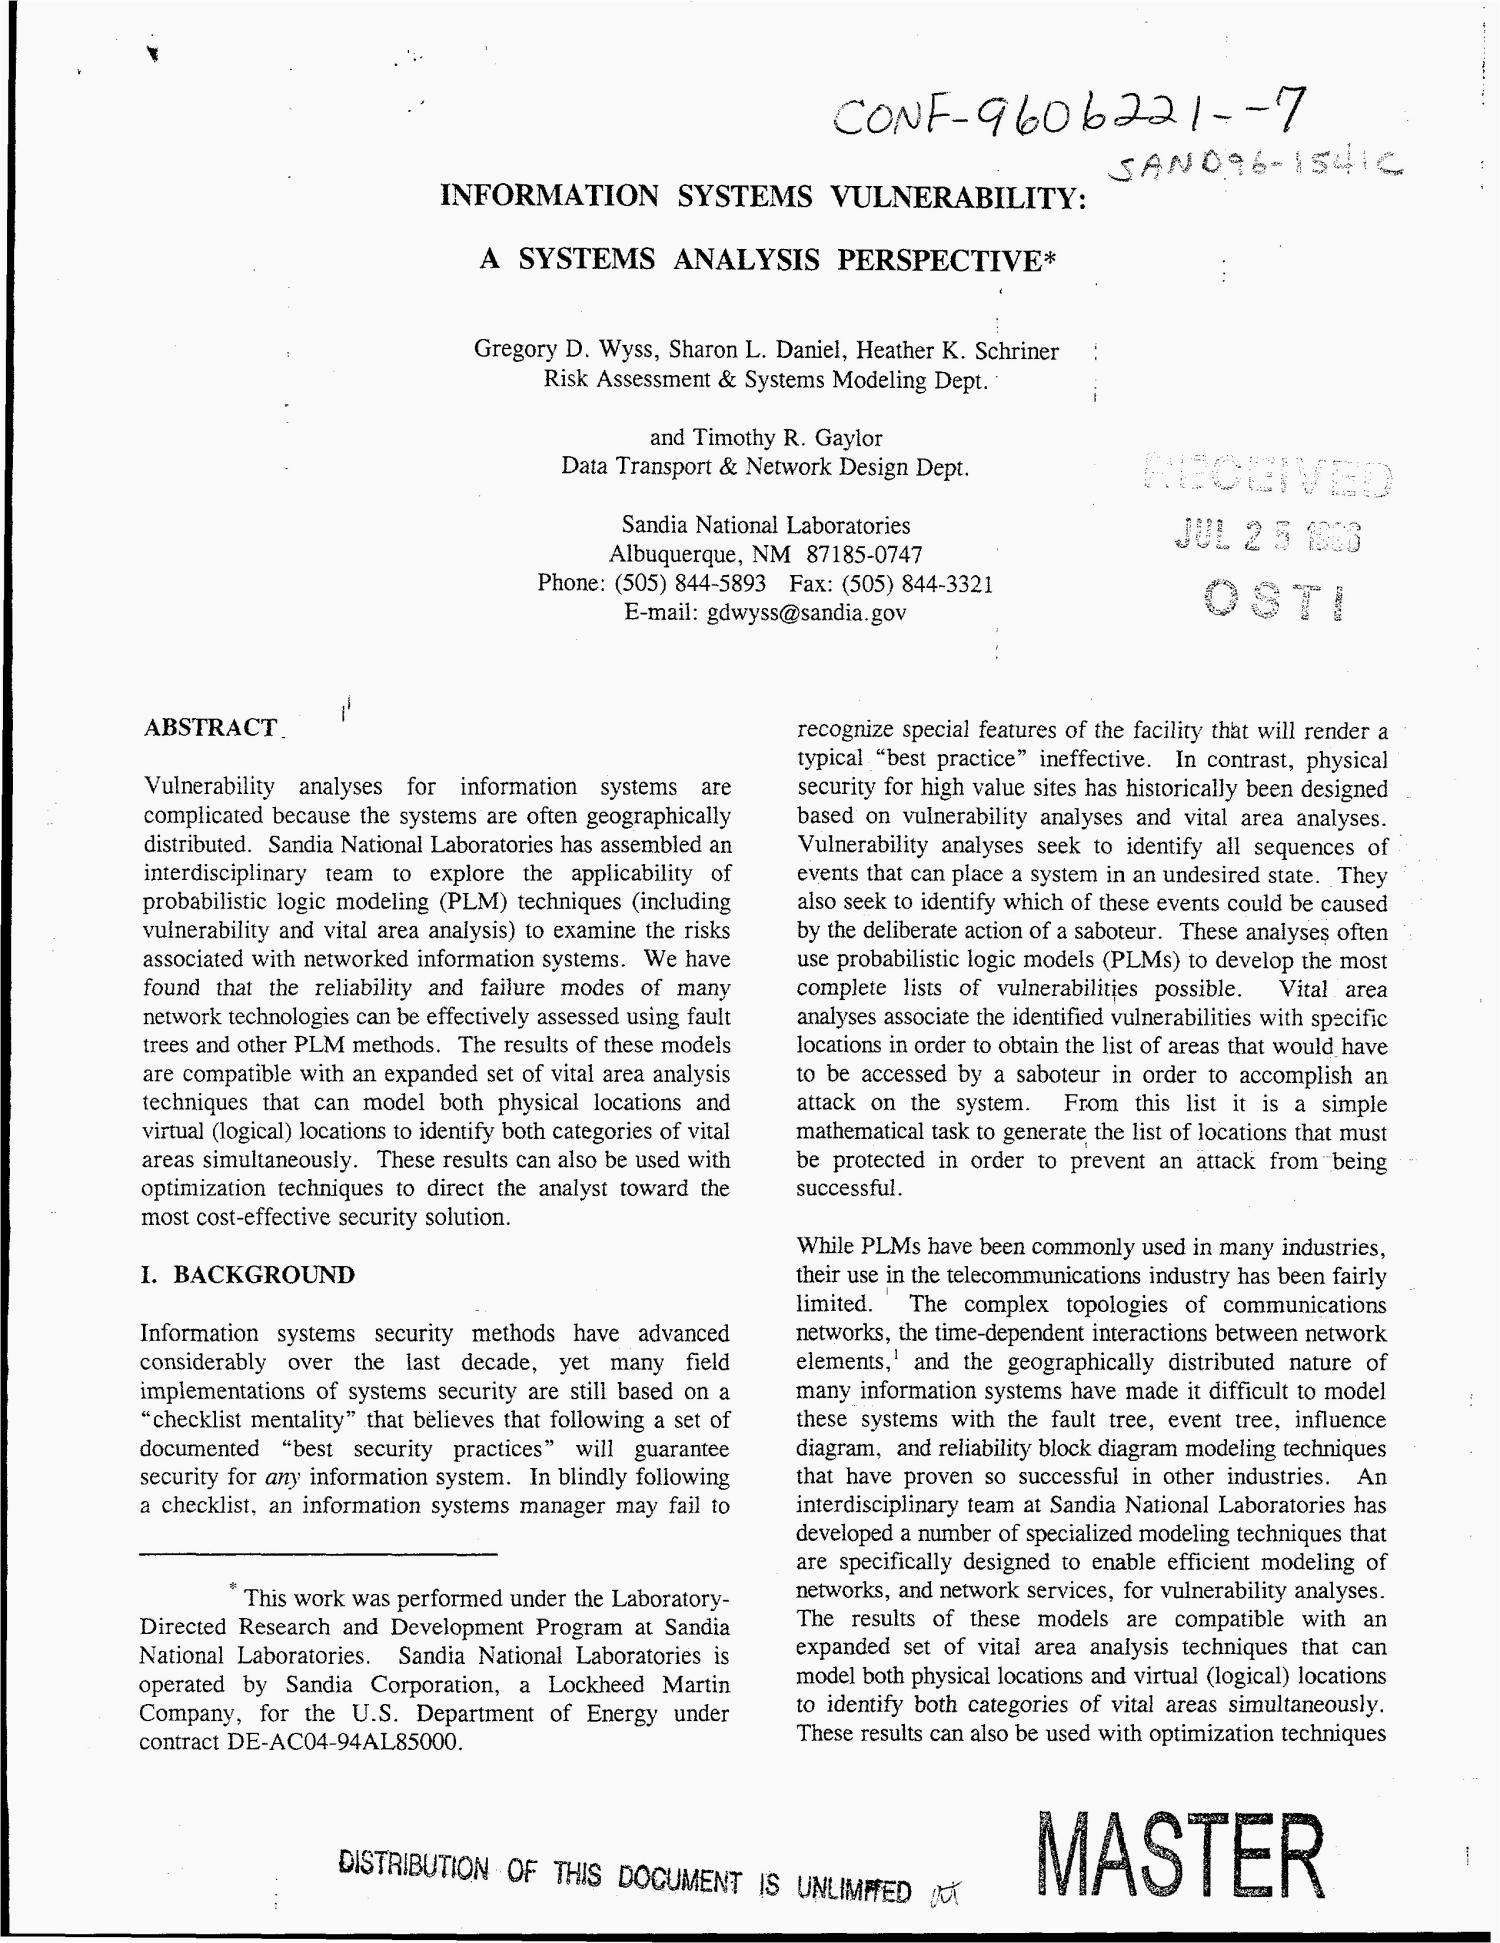 Information Systems Vulnerability A Systems Analysis Perspective Unt Digital Library